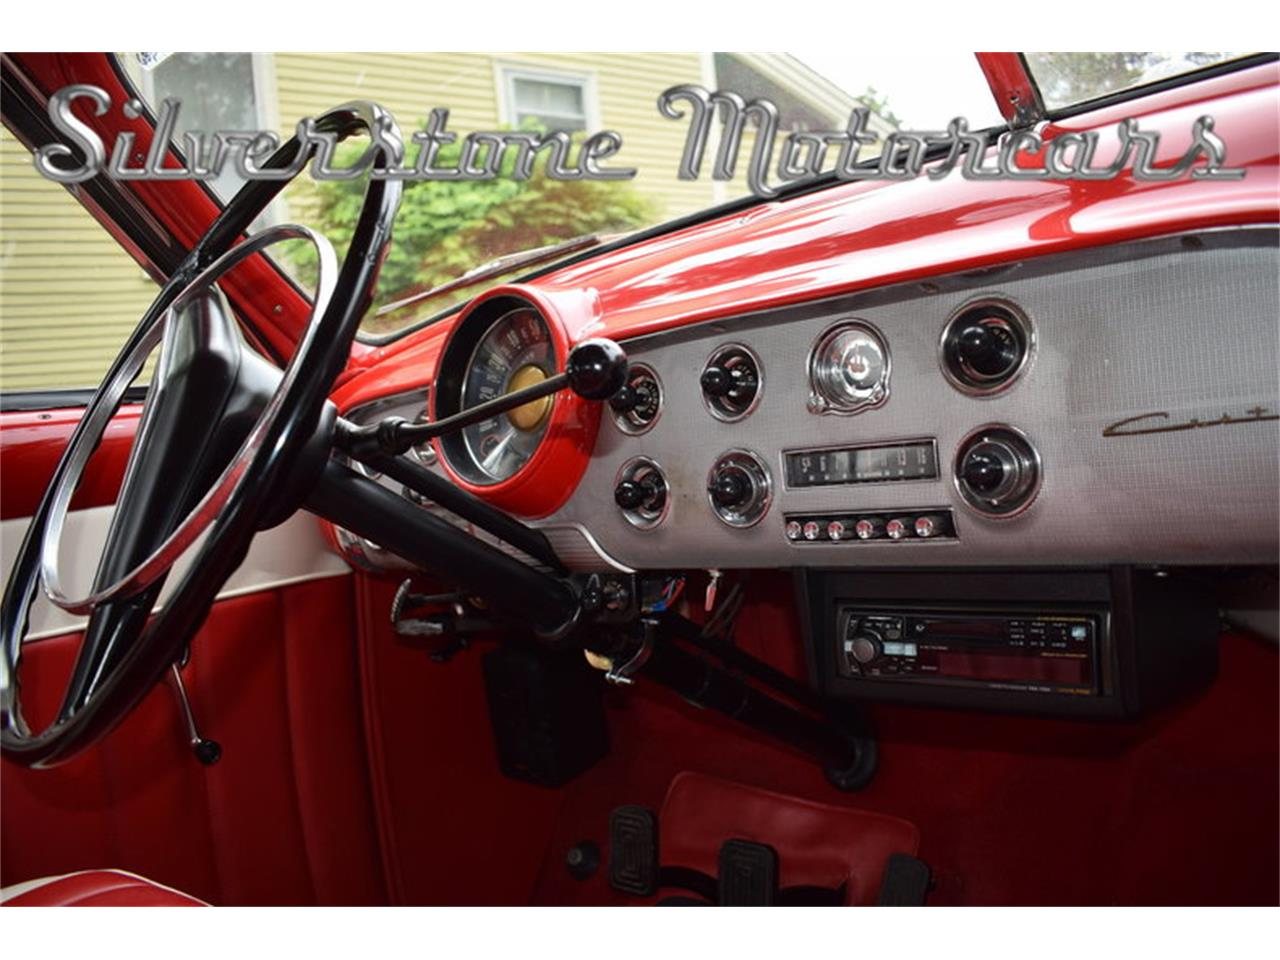 Large Picture of 1951 Custom Deluxe - $39,000.00 Offered by Silverstone Motorcars - L79S